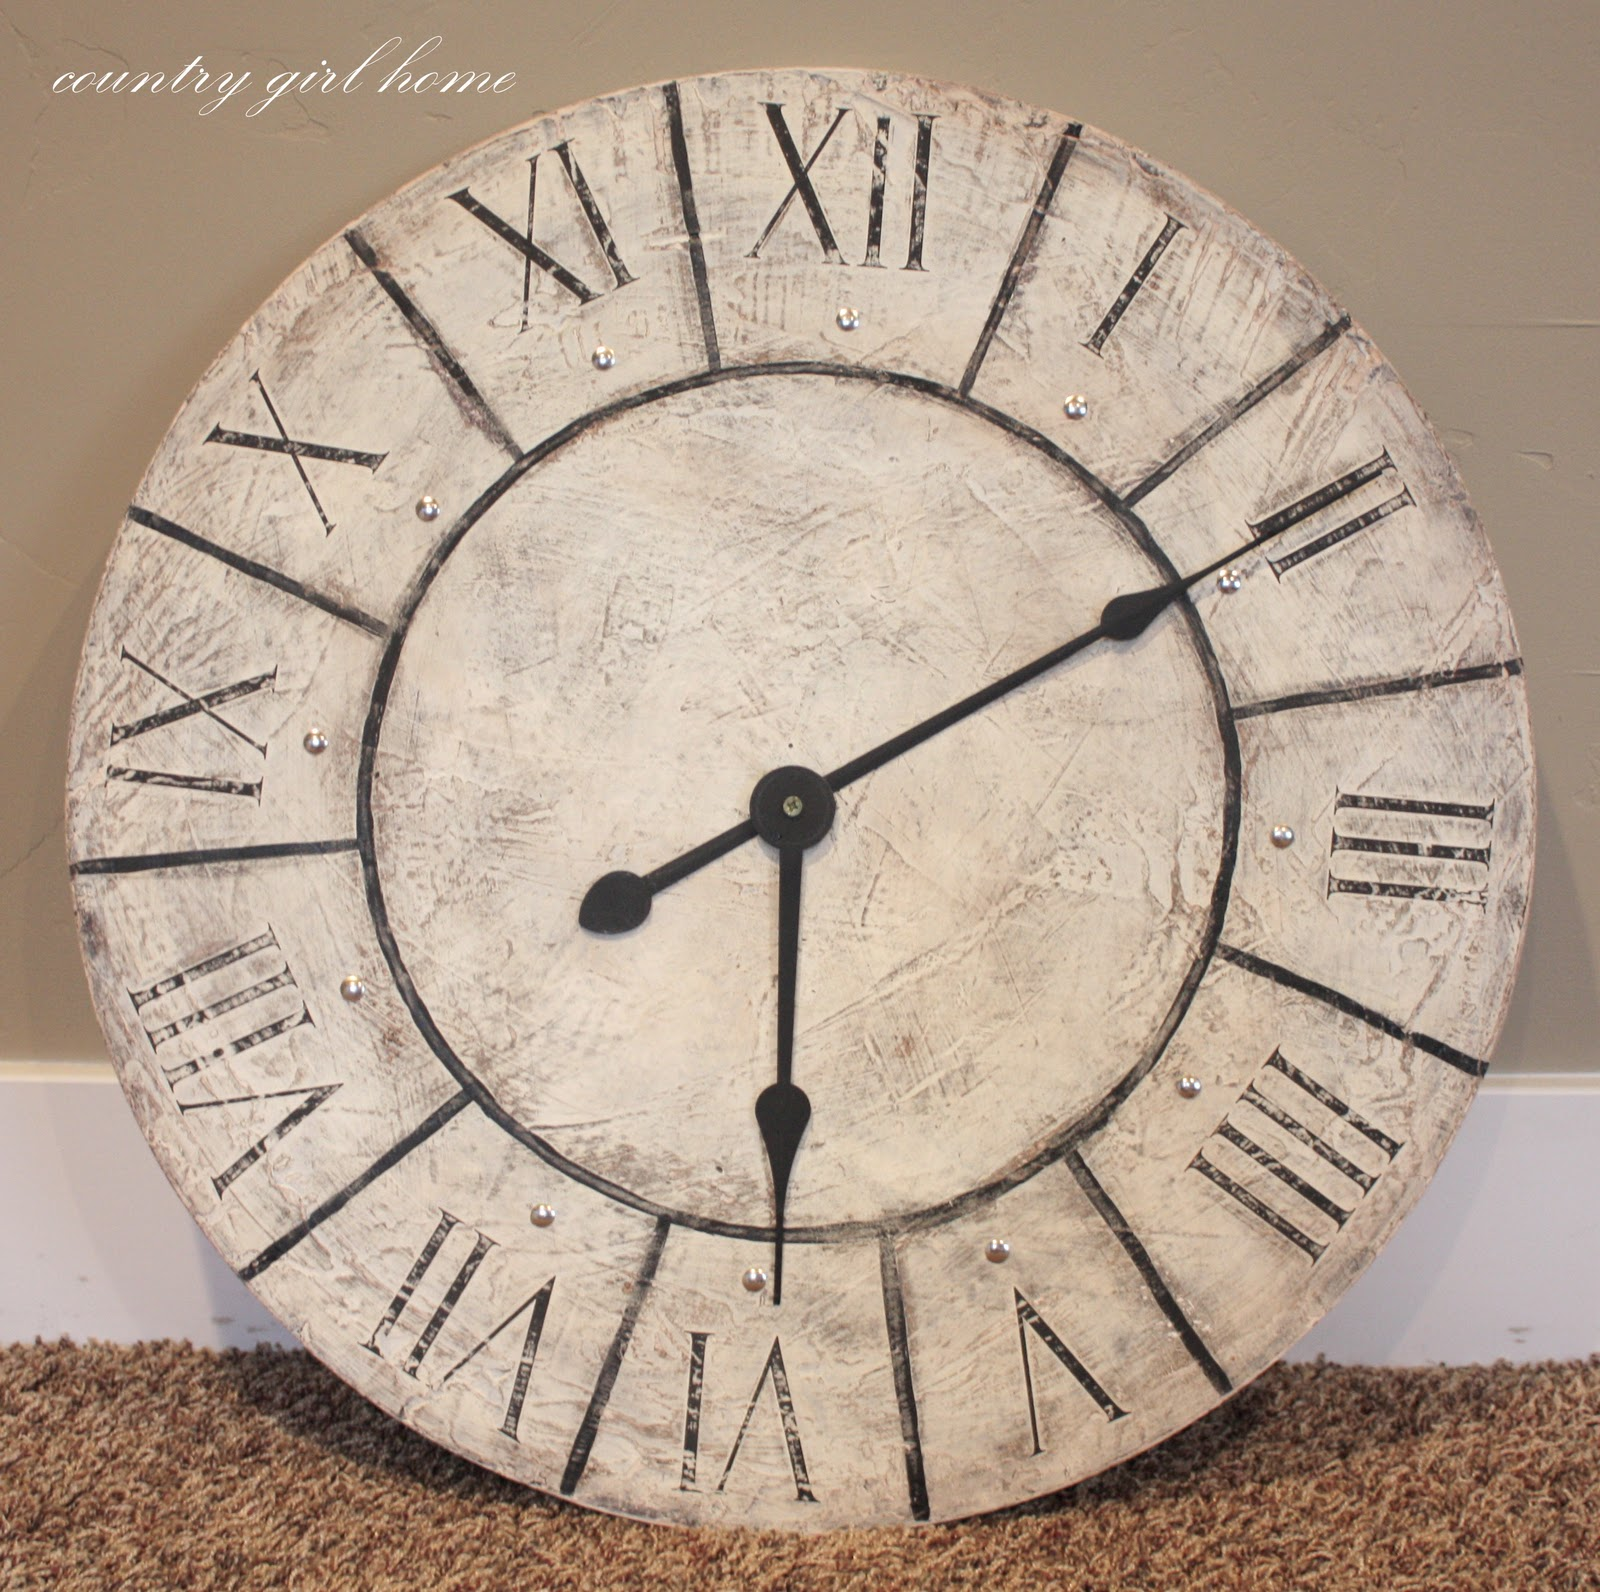 Large Diameter Wall Clocks Country Girl Home November 2011